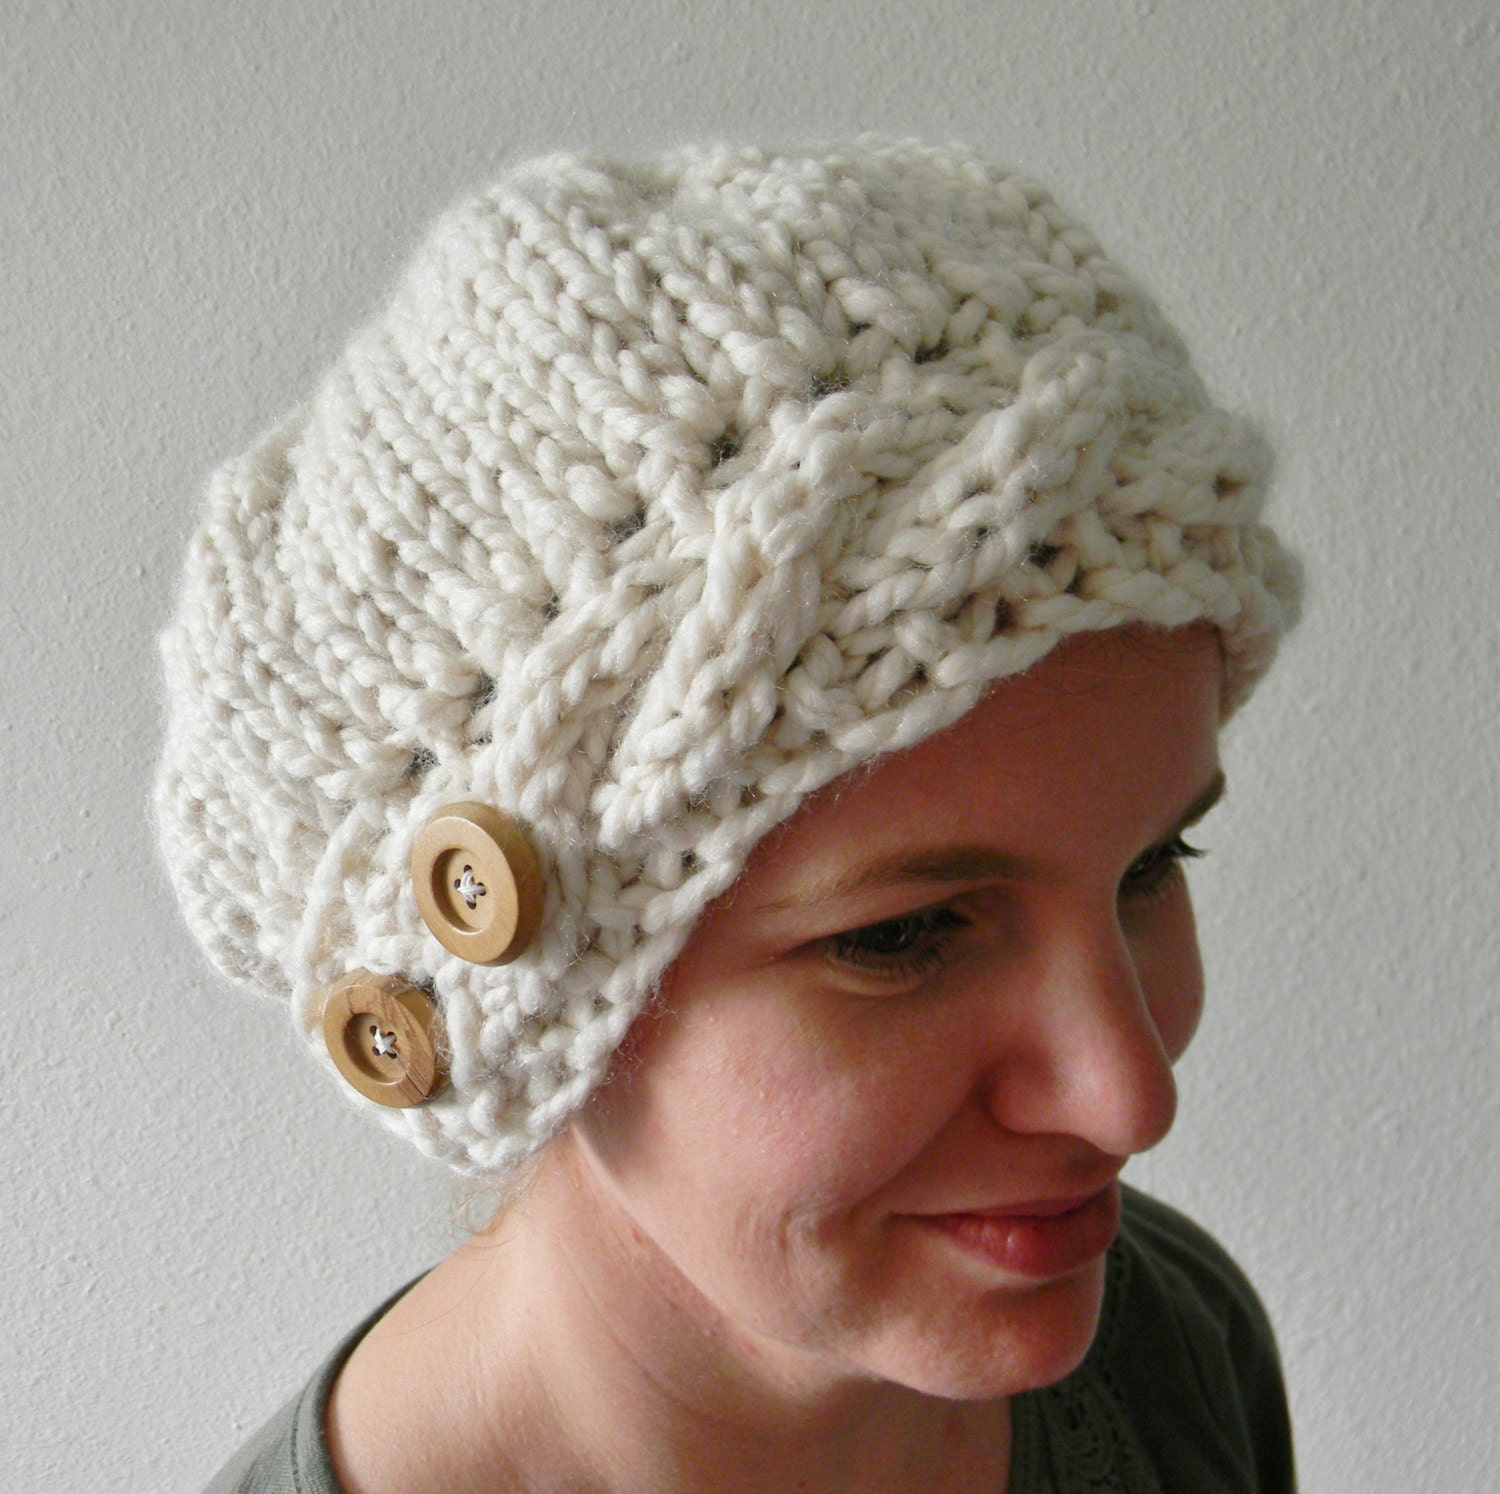 Knit a simple beret with cable brim crafthubs knitting pattern jenny slouchy knit hat pattern slouchy bankloansurffo Images